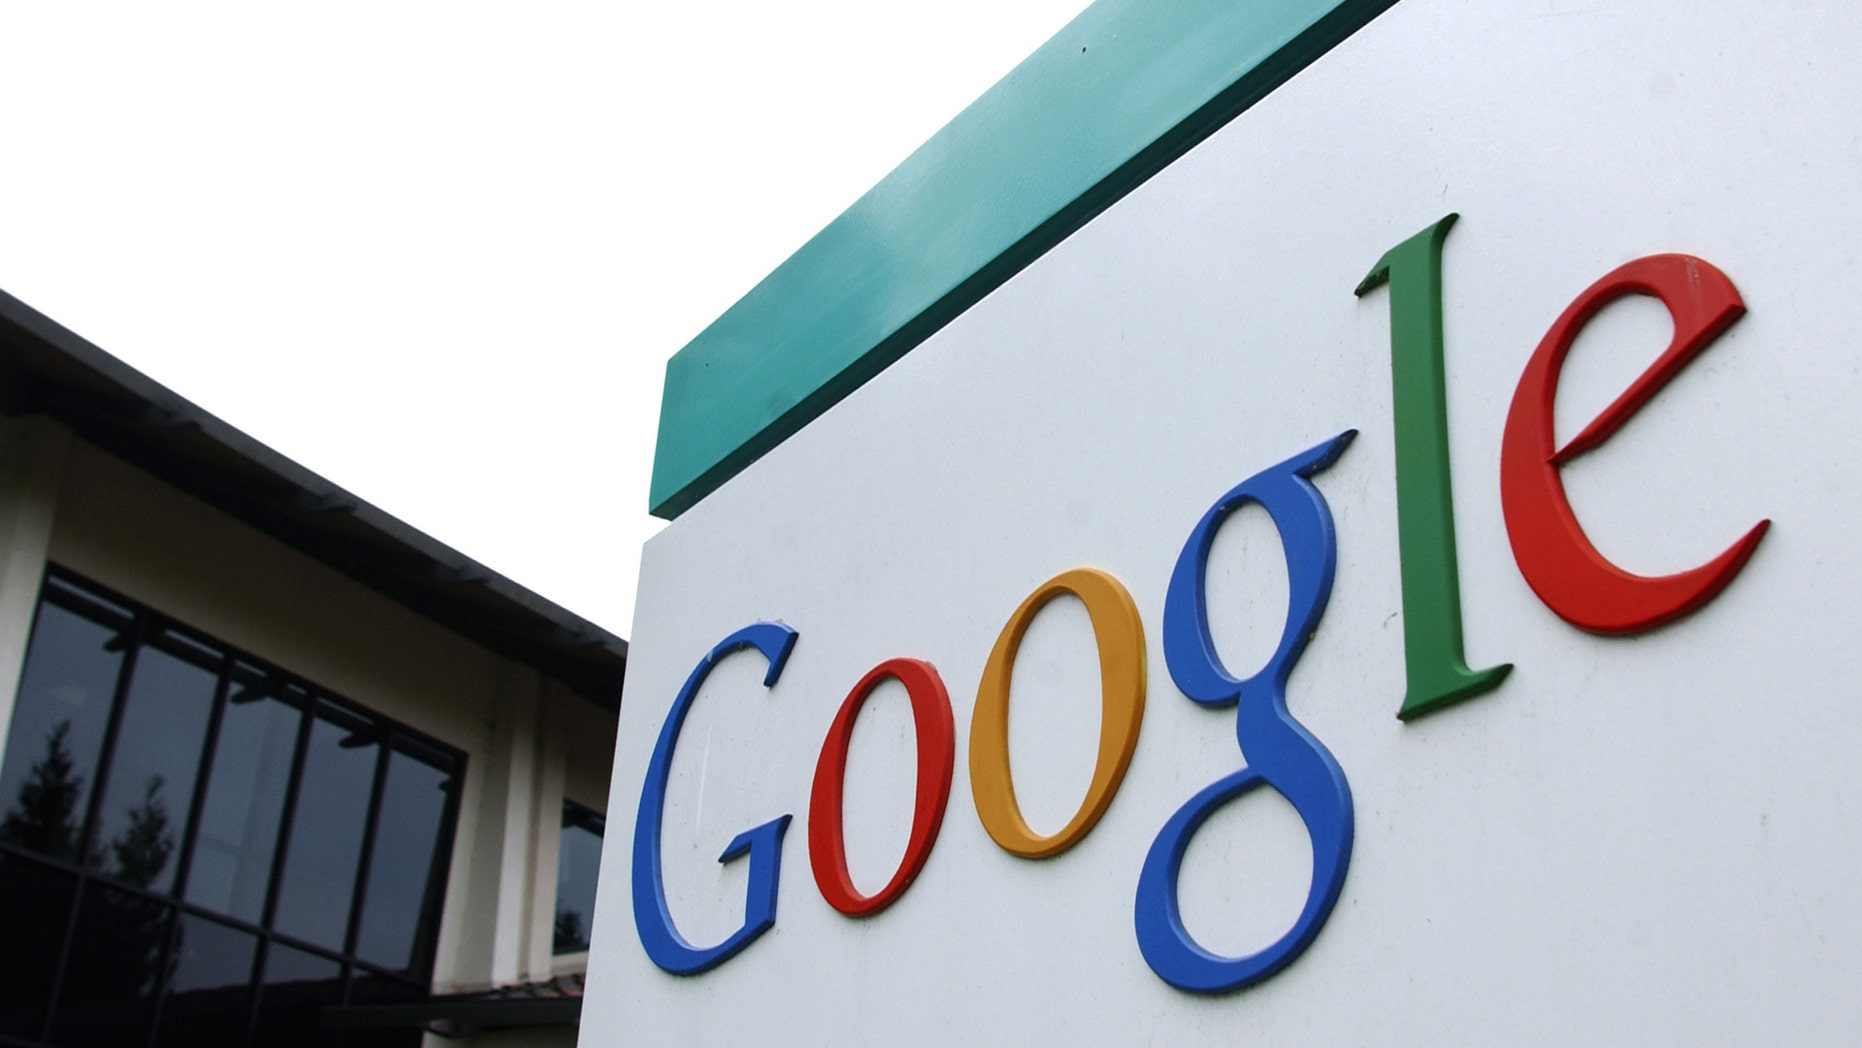 File photo: The logo of Google Inc. is seen outside their headquarters building in Mountain View, California August 18, 2004.  (REUTERS/Clay McLachlan)